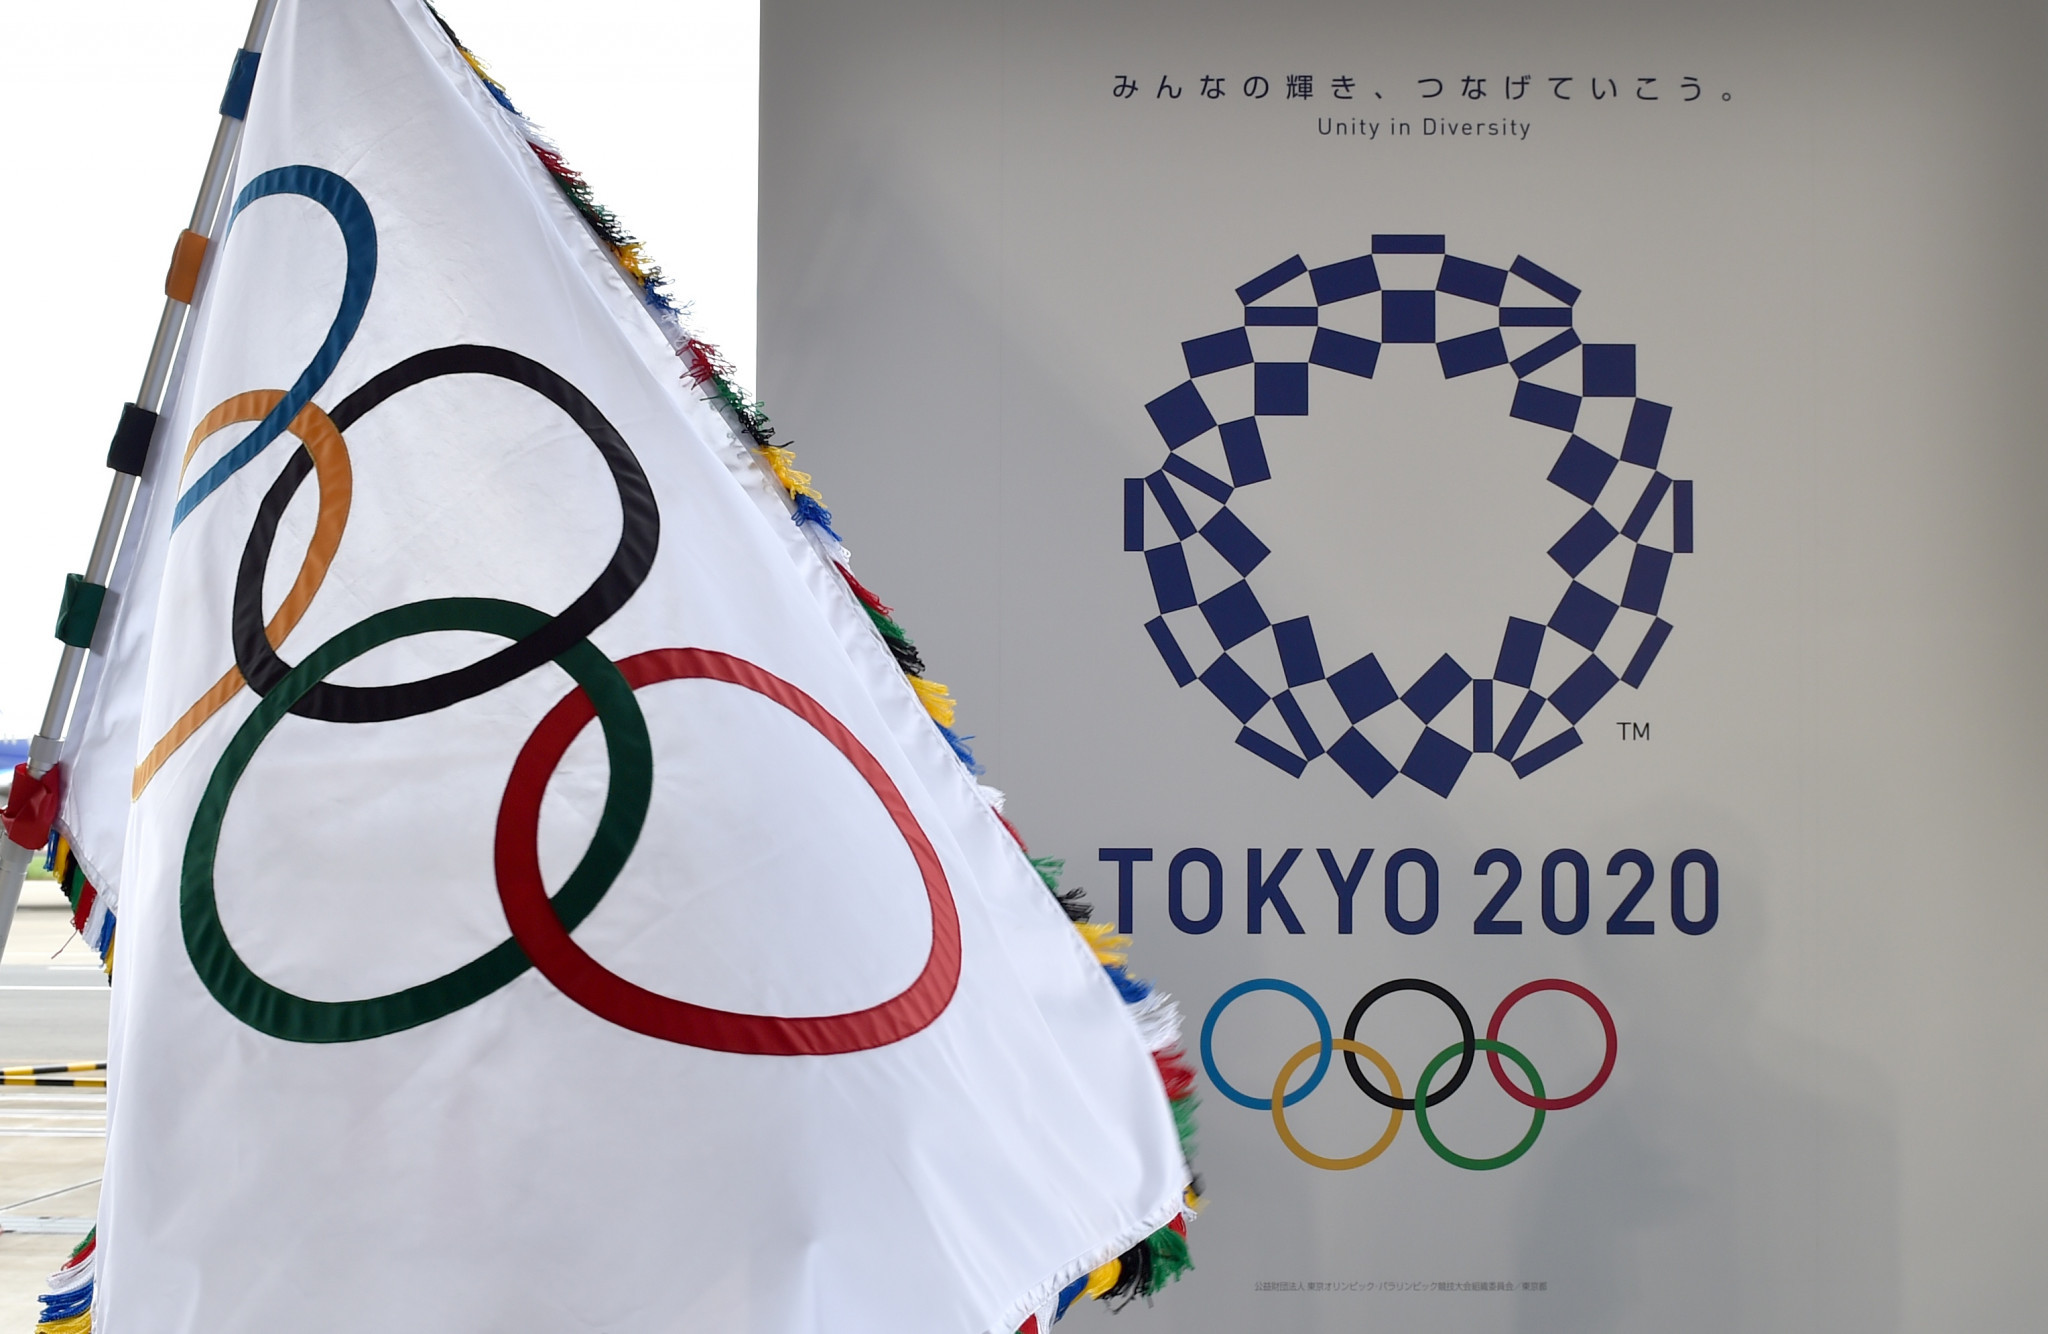 Tokyo 2020 announces free internet for journalists and photographers